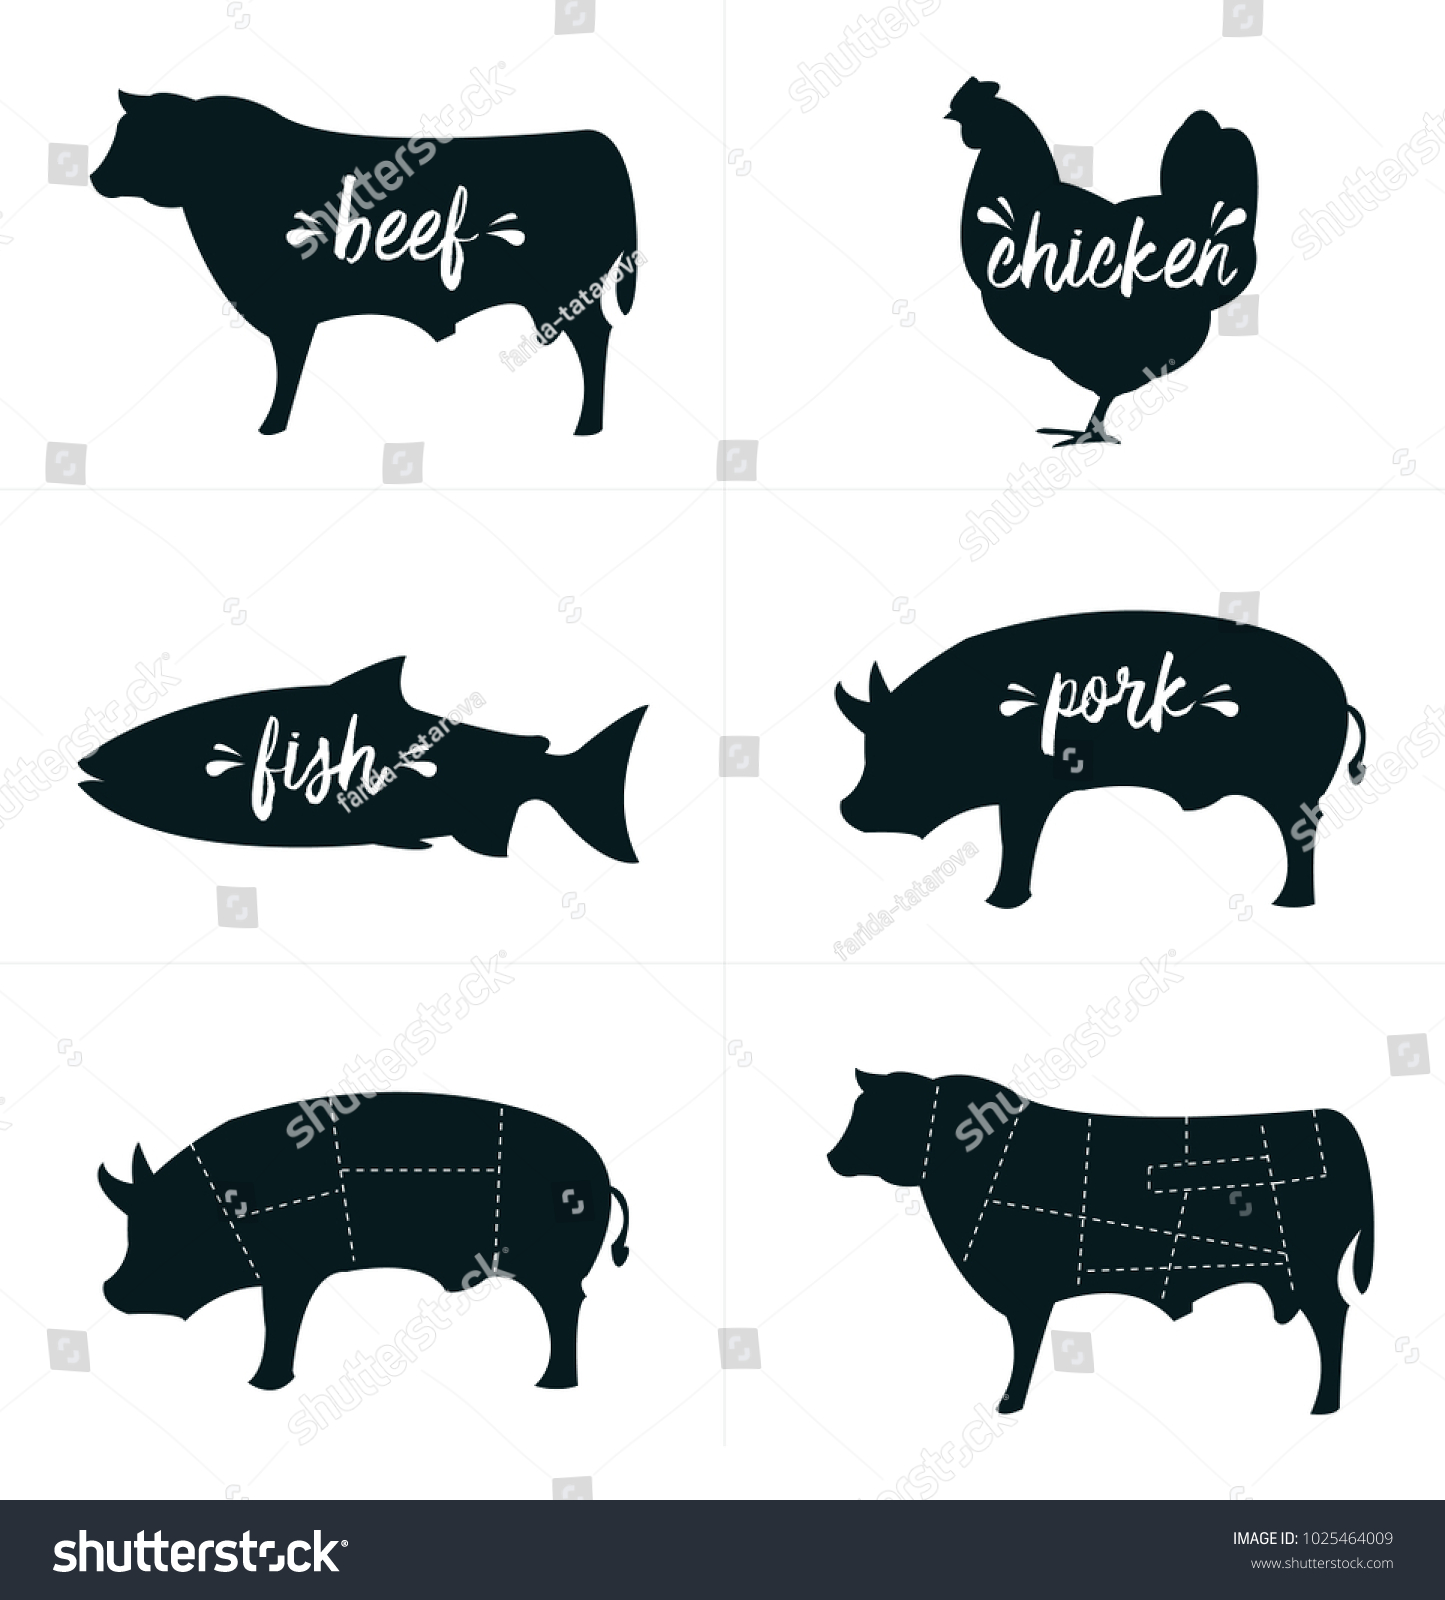 Vector Farm Animals Silhouettes Set Meat Stock Royalty Free Cut Diagrams Cuts